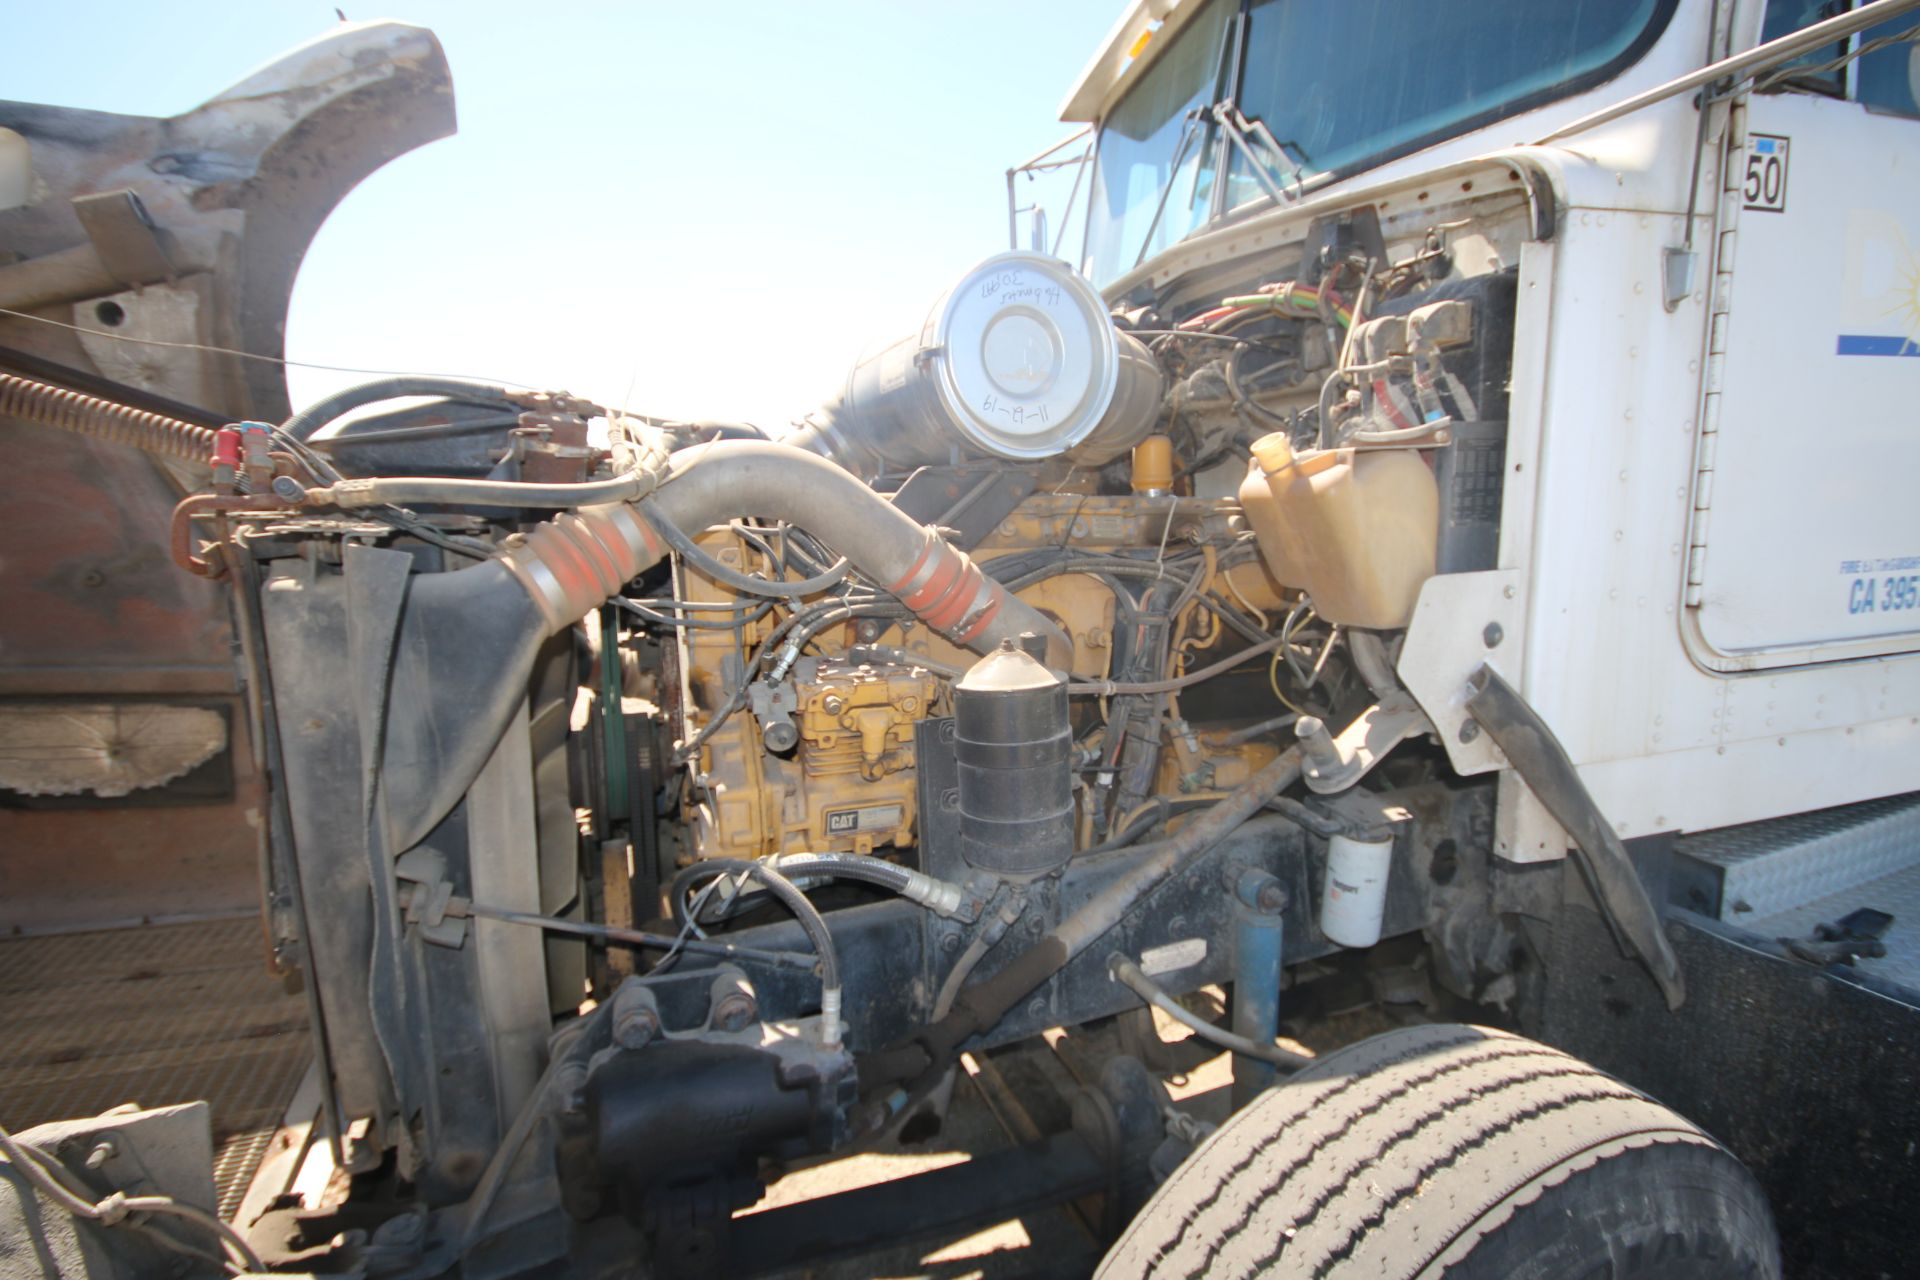 1996 Kenworth 3-Axle Roll-Off Straight Truck, VIN #: 1XKDDB9XOTS687107, with 24,722 Miles, License - Image 20 of 30